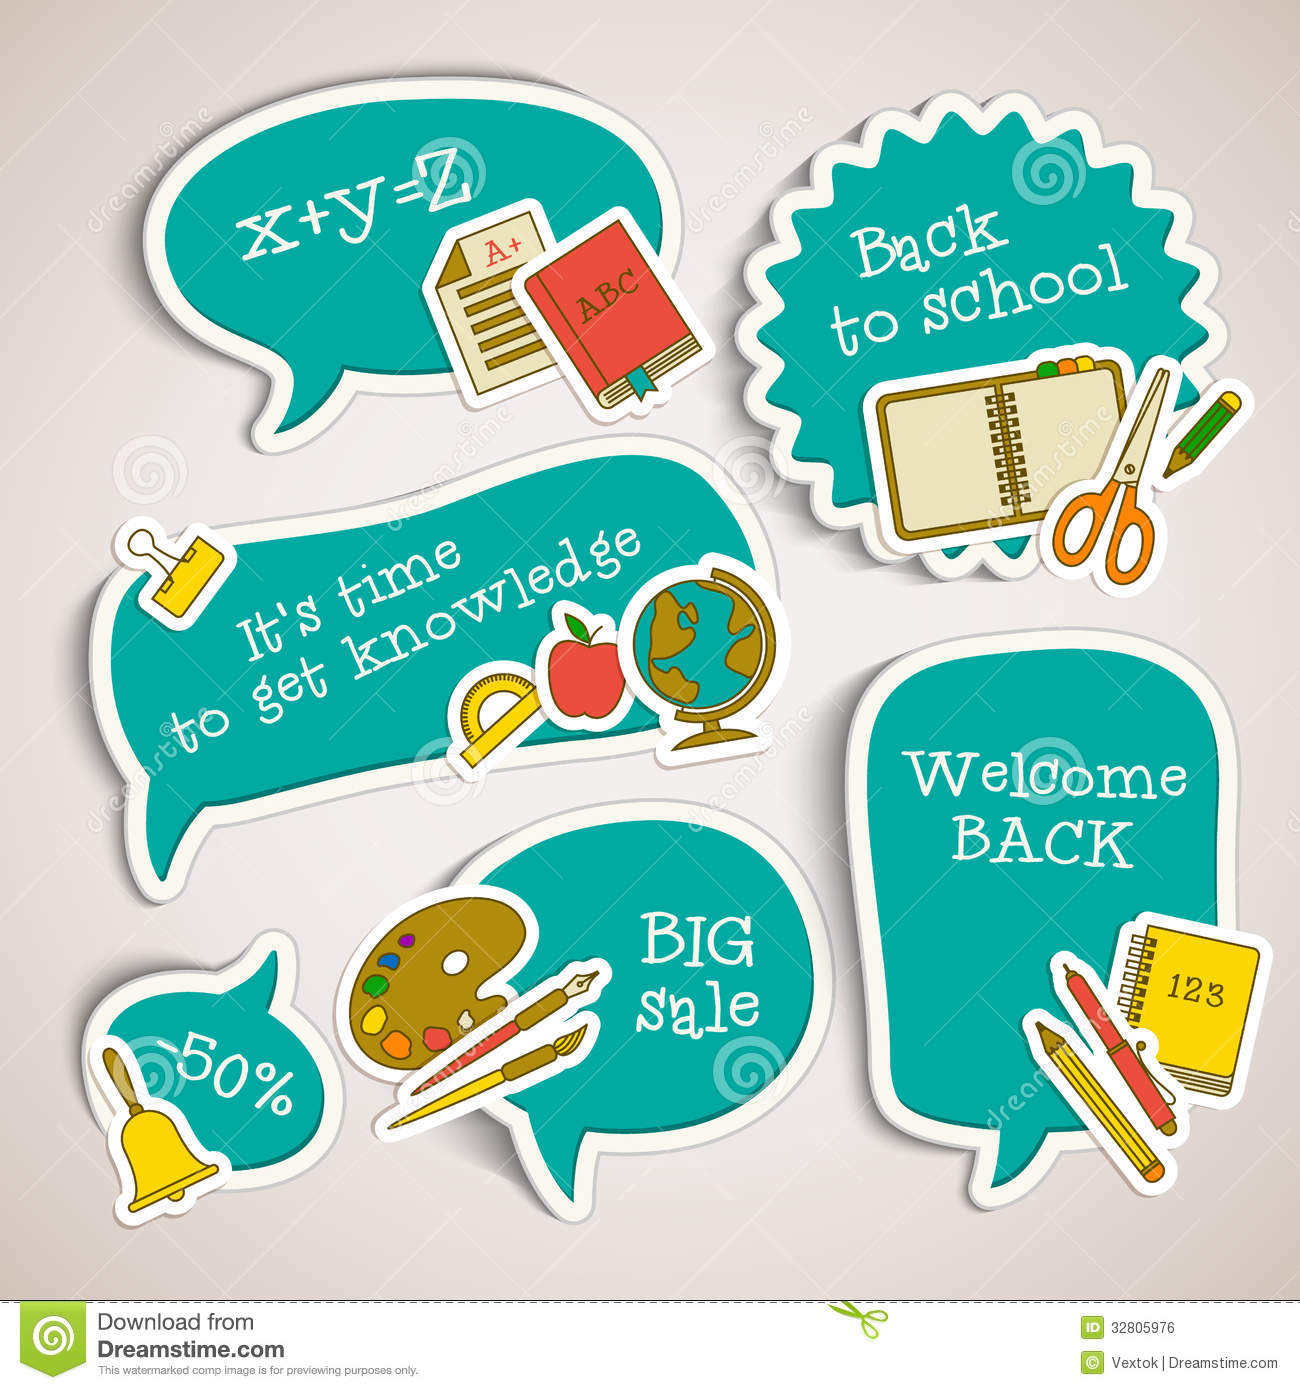 Royalty Free Stock Image: Back to school banners set. Image: 32805976